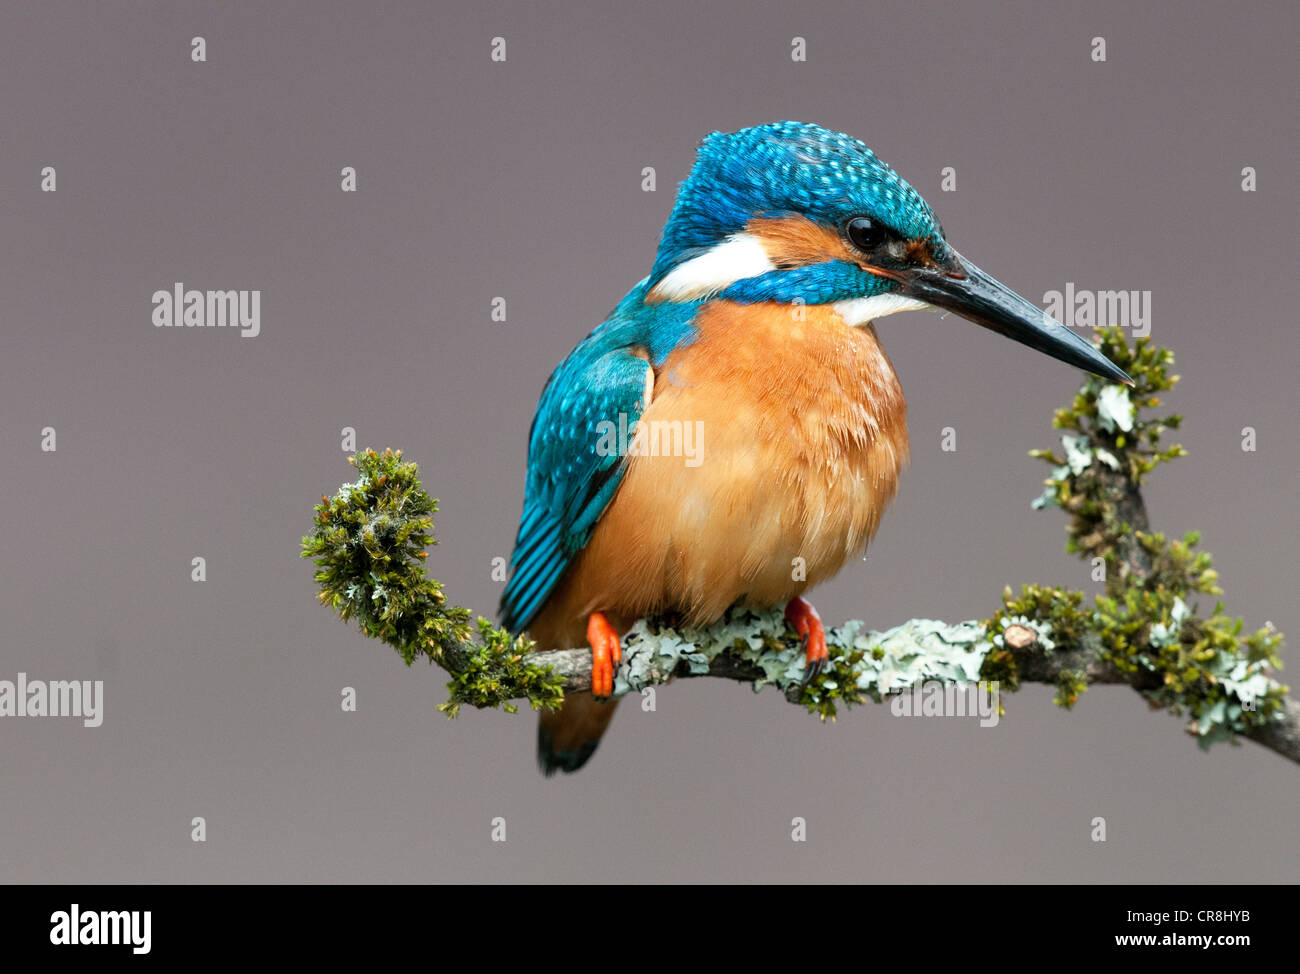 male kingfisher sitting on a twig looking right - Stock Image